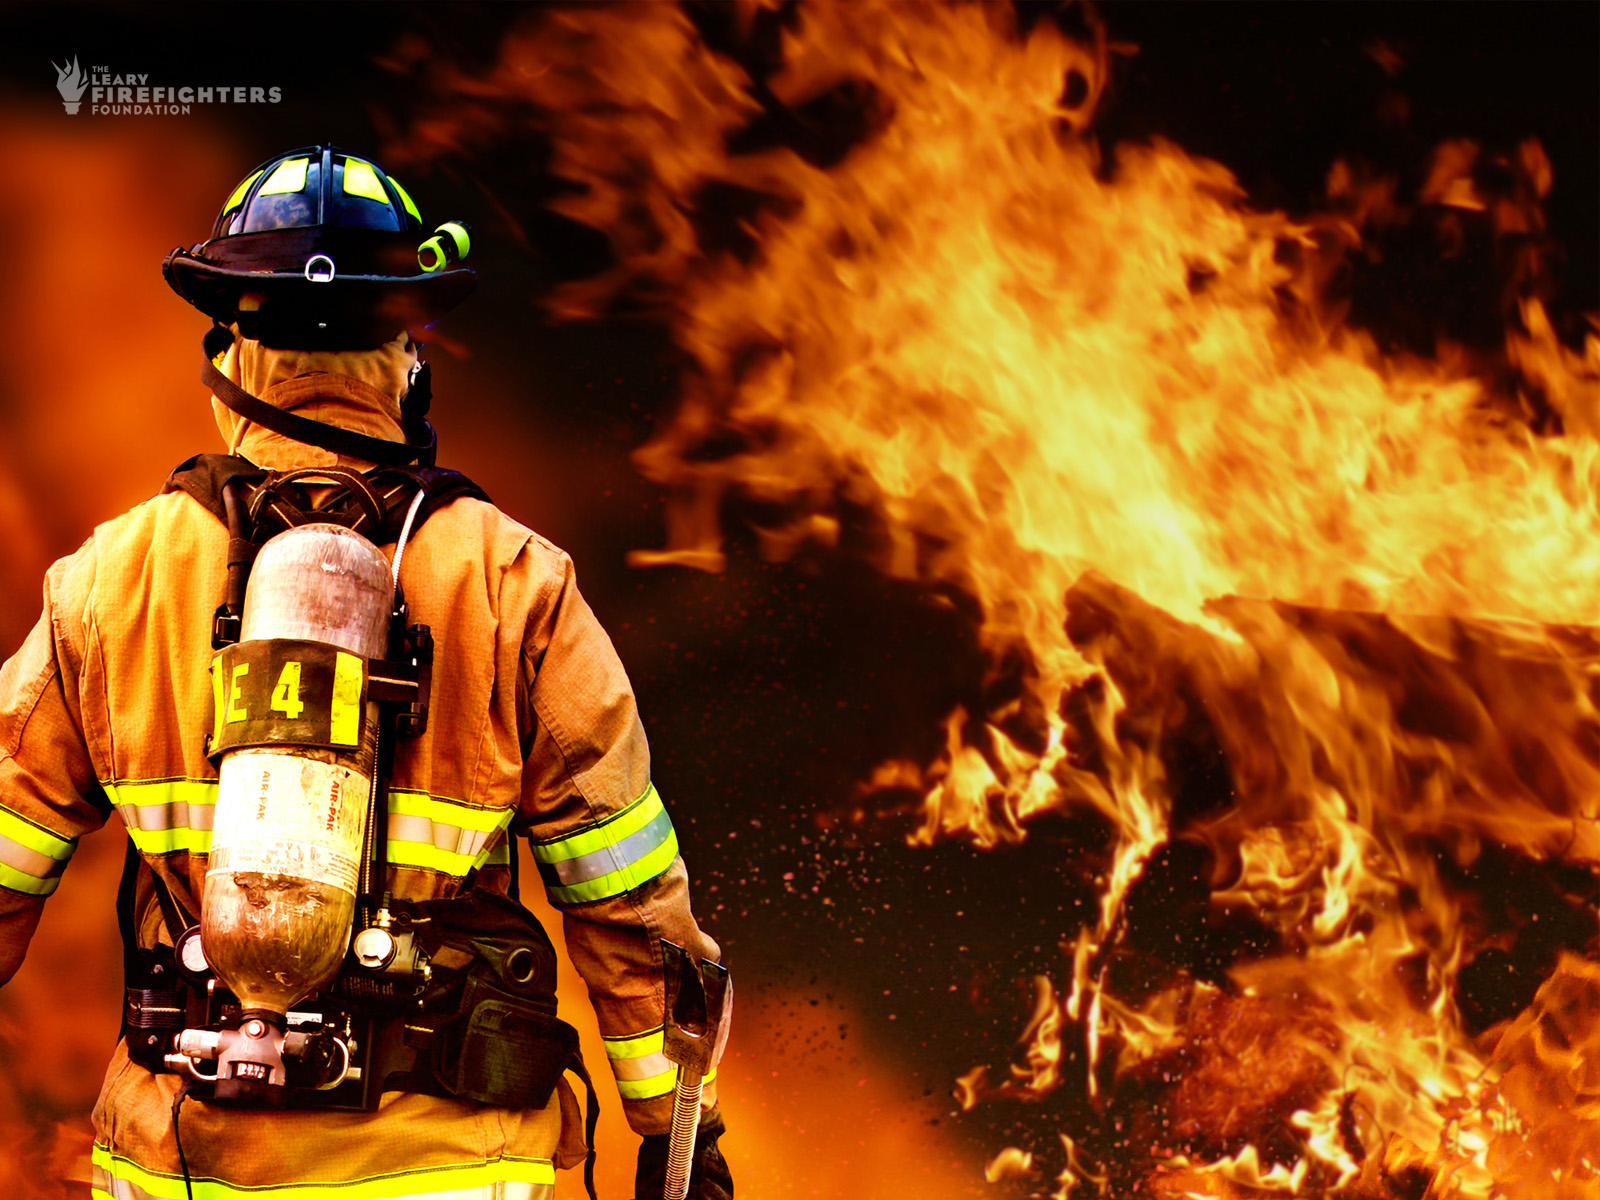 The Leary Firefighters Foundation Twitter Backgrounds 1600x1200